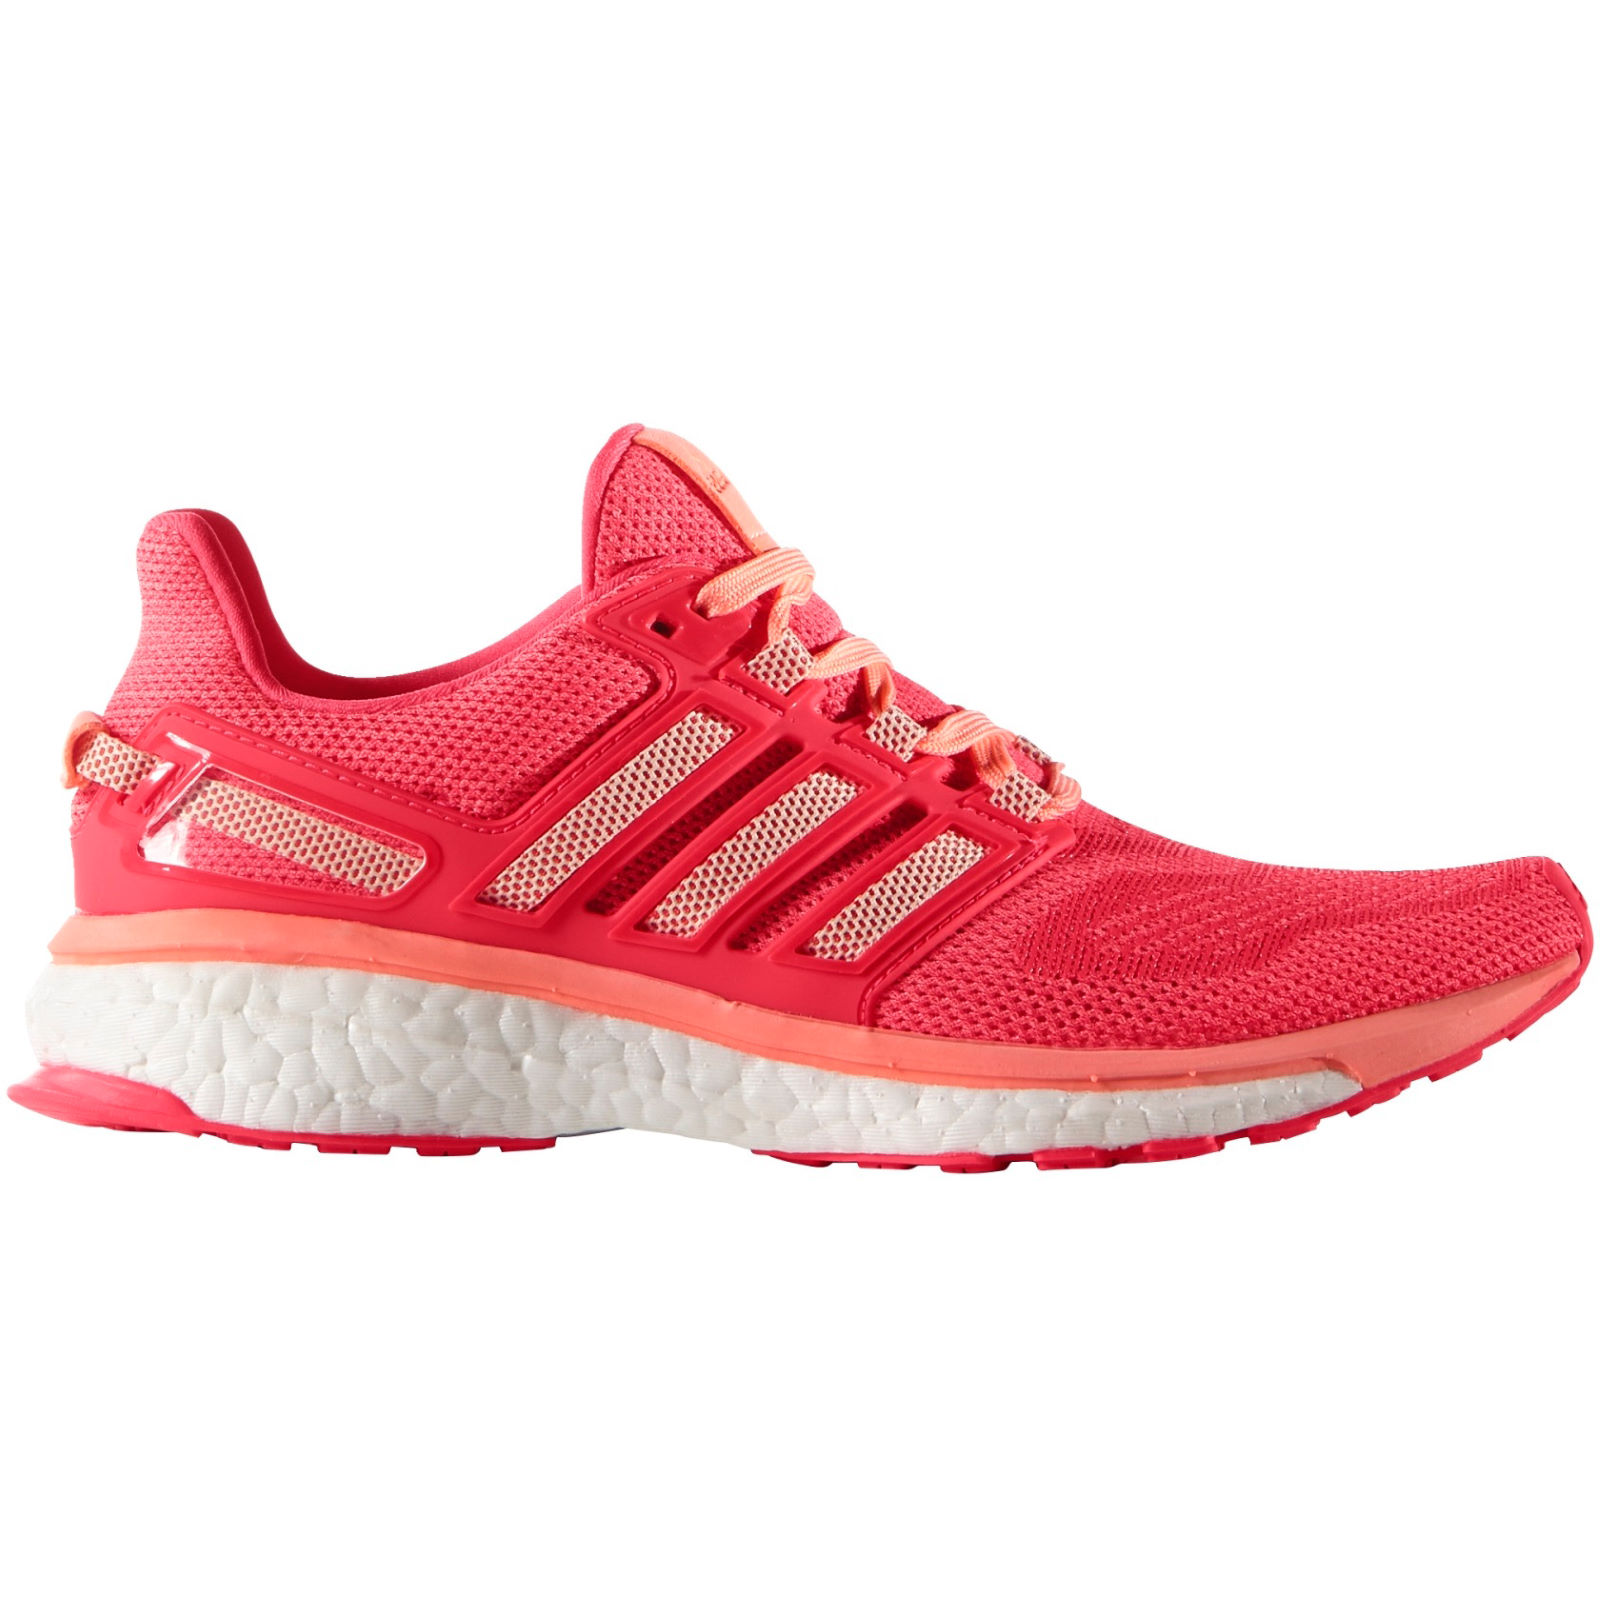 wiggle adidas women s energy boost 3 shoes ss16 cushion